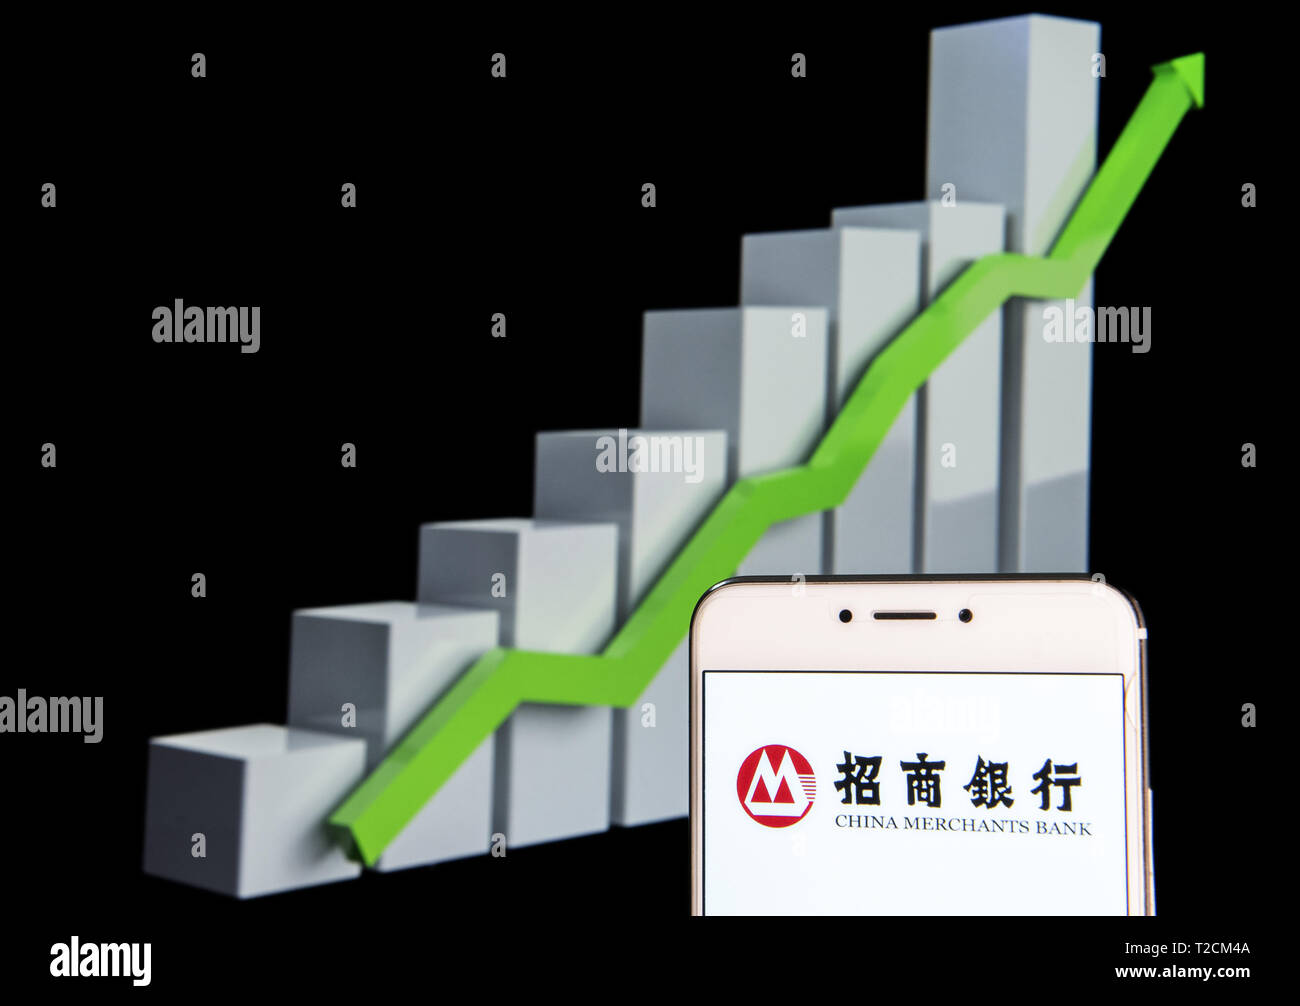 Hong Kong. 11th Feb, 2019. In this photo illustration a Chinese state-owned banking and financial corporation China Merchants Bank logo is seen on an android mobile device with an ascent growth chart in the background. Credit: Budrul Chukrut/SOPA Images/ZUMA Wire/Alamy Live News - Stock Image